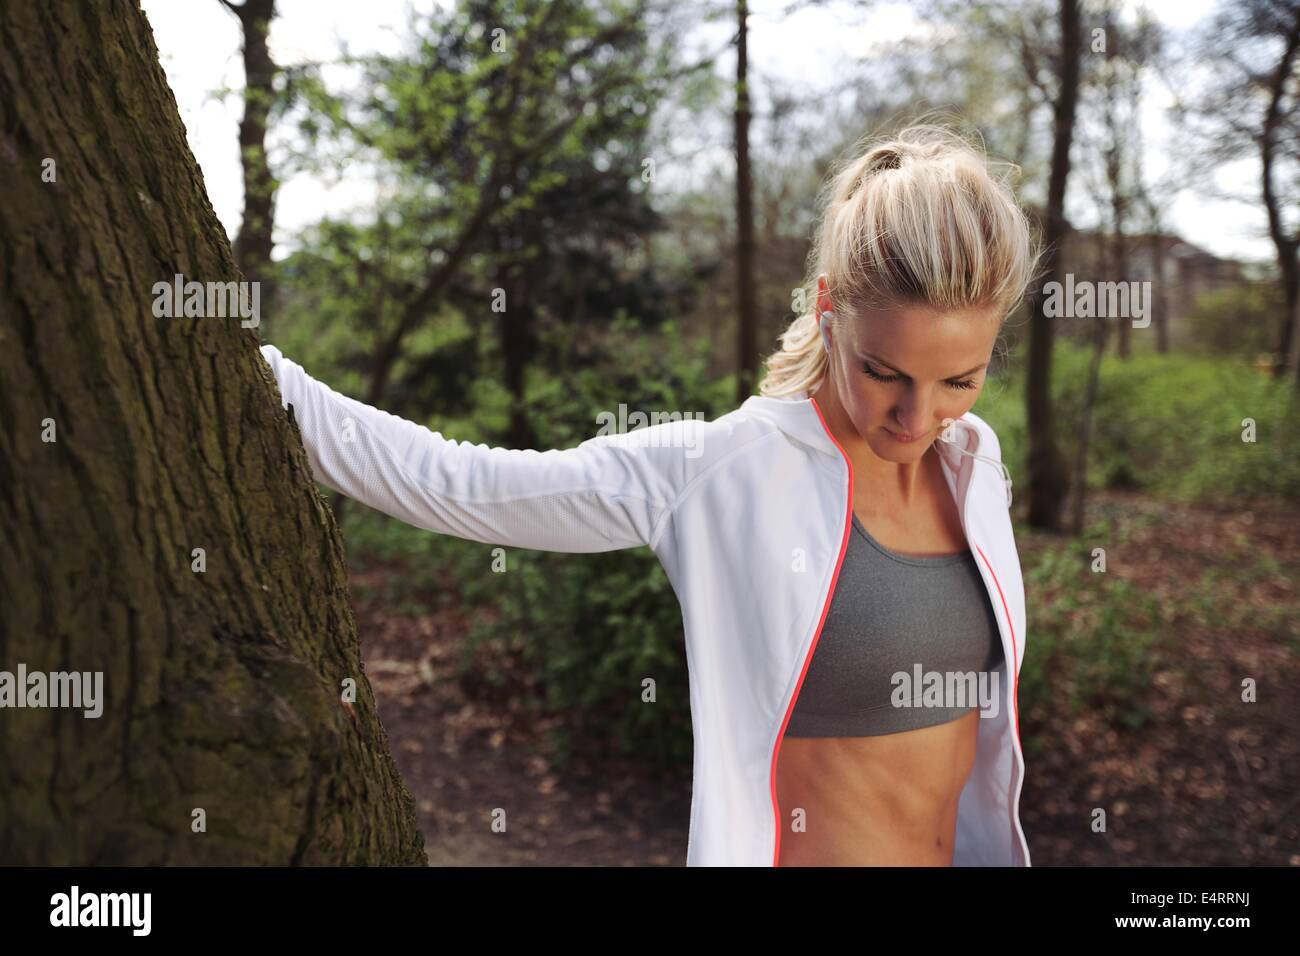 Beautiful young woman resting by a tree after jogging in a park. Fit female athlete taking a break after running. - Stock Image